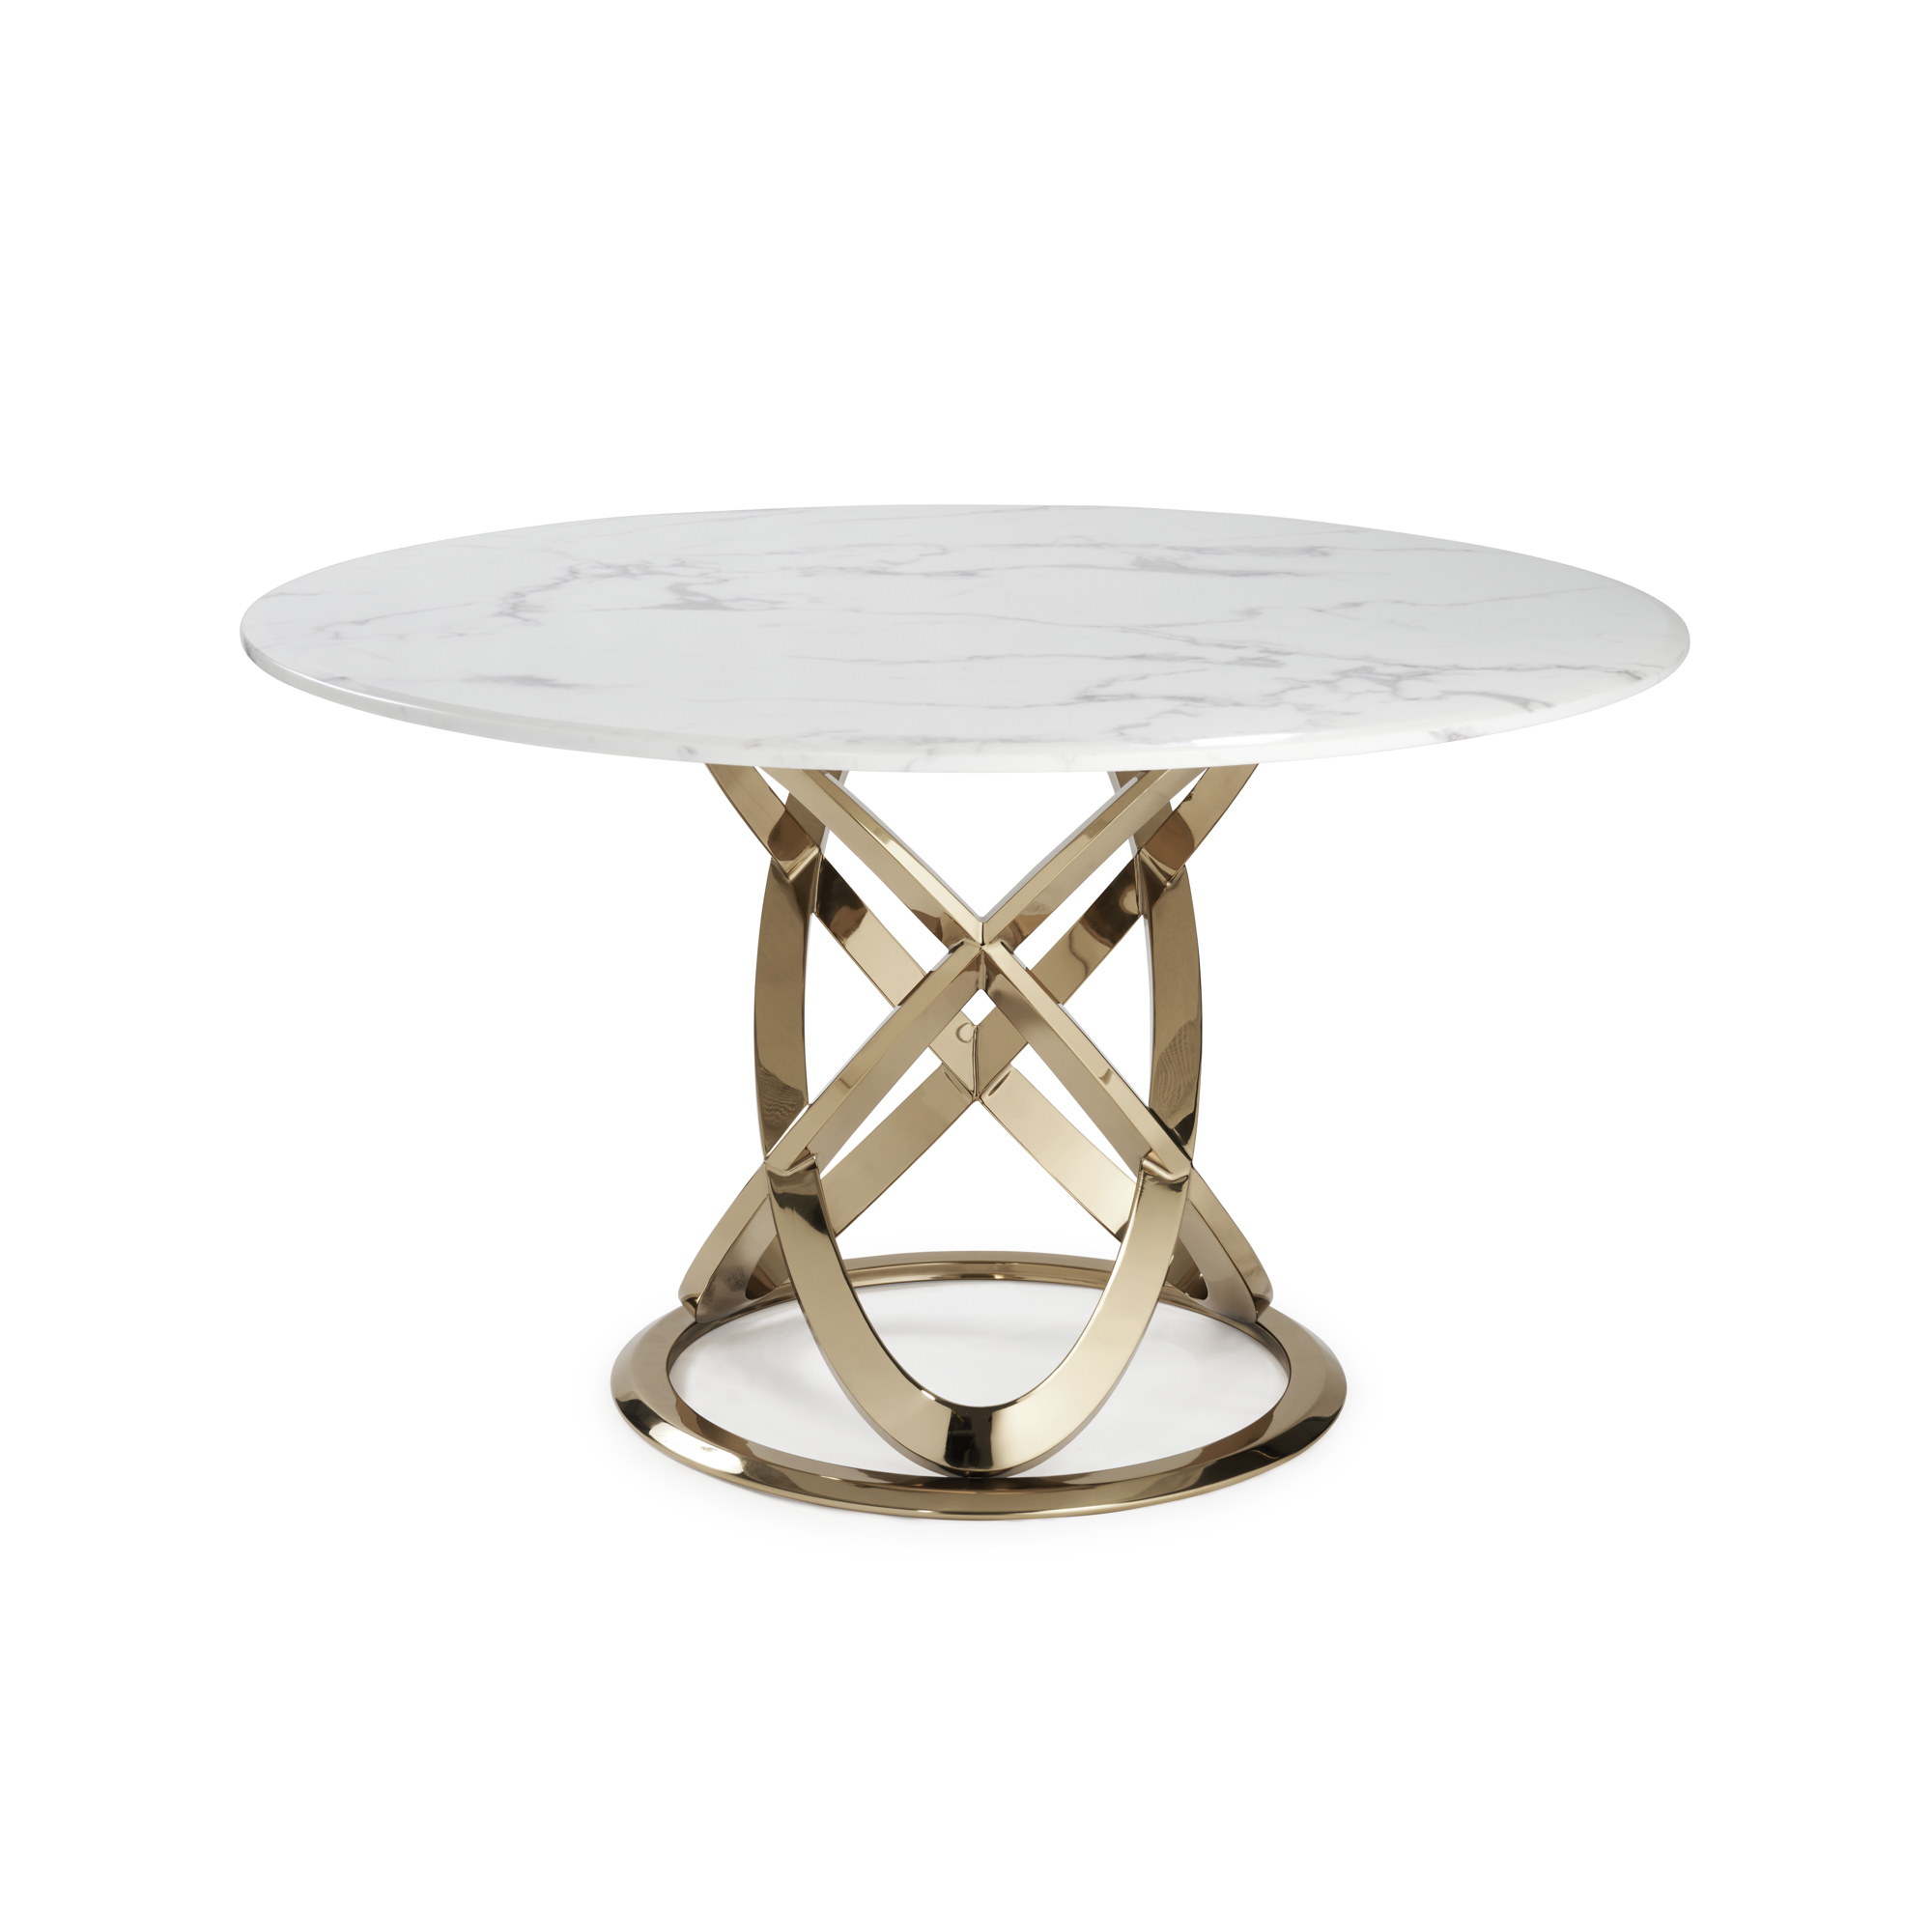 1.3M Pedestal Polished Circular Gold Stainless Steel Dining Table with White Marble Top